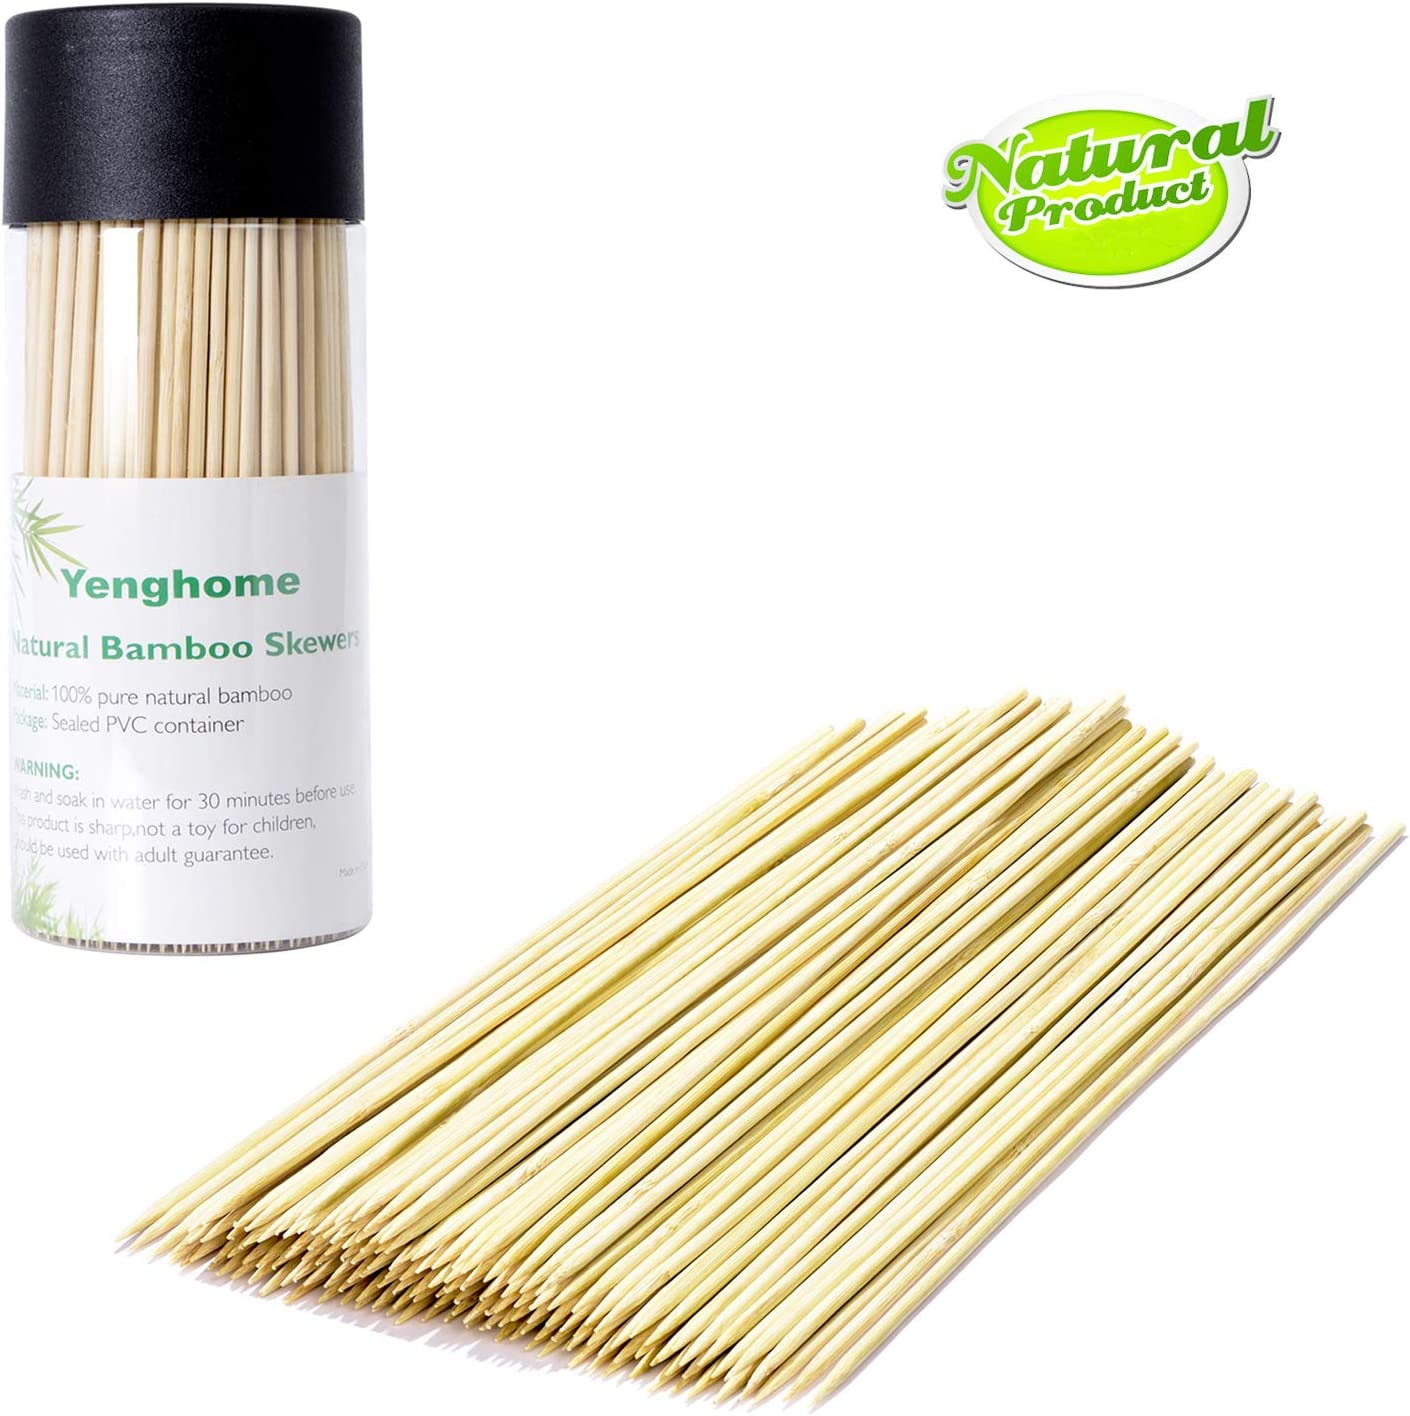 YengHome Natural Bamboo Skewers for Barbecue,BBQ, Shish Kabob, Grill, Fruit, Hot Dog,Chocolate Fountain, Food, Size 8 inch(300 PCS)